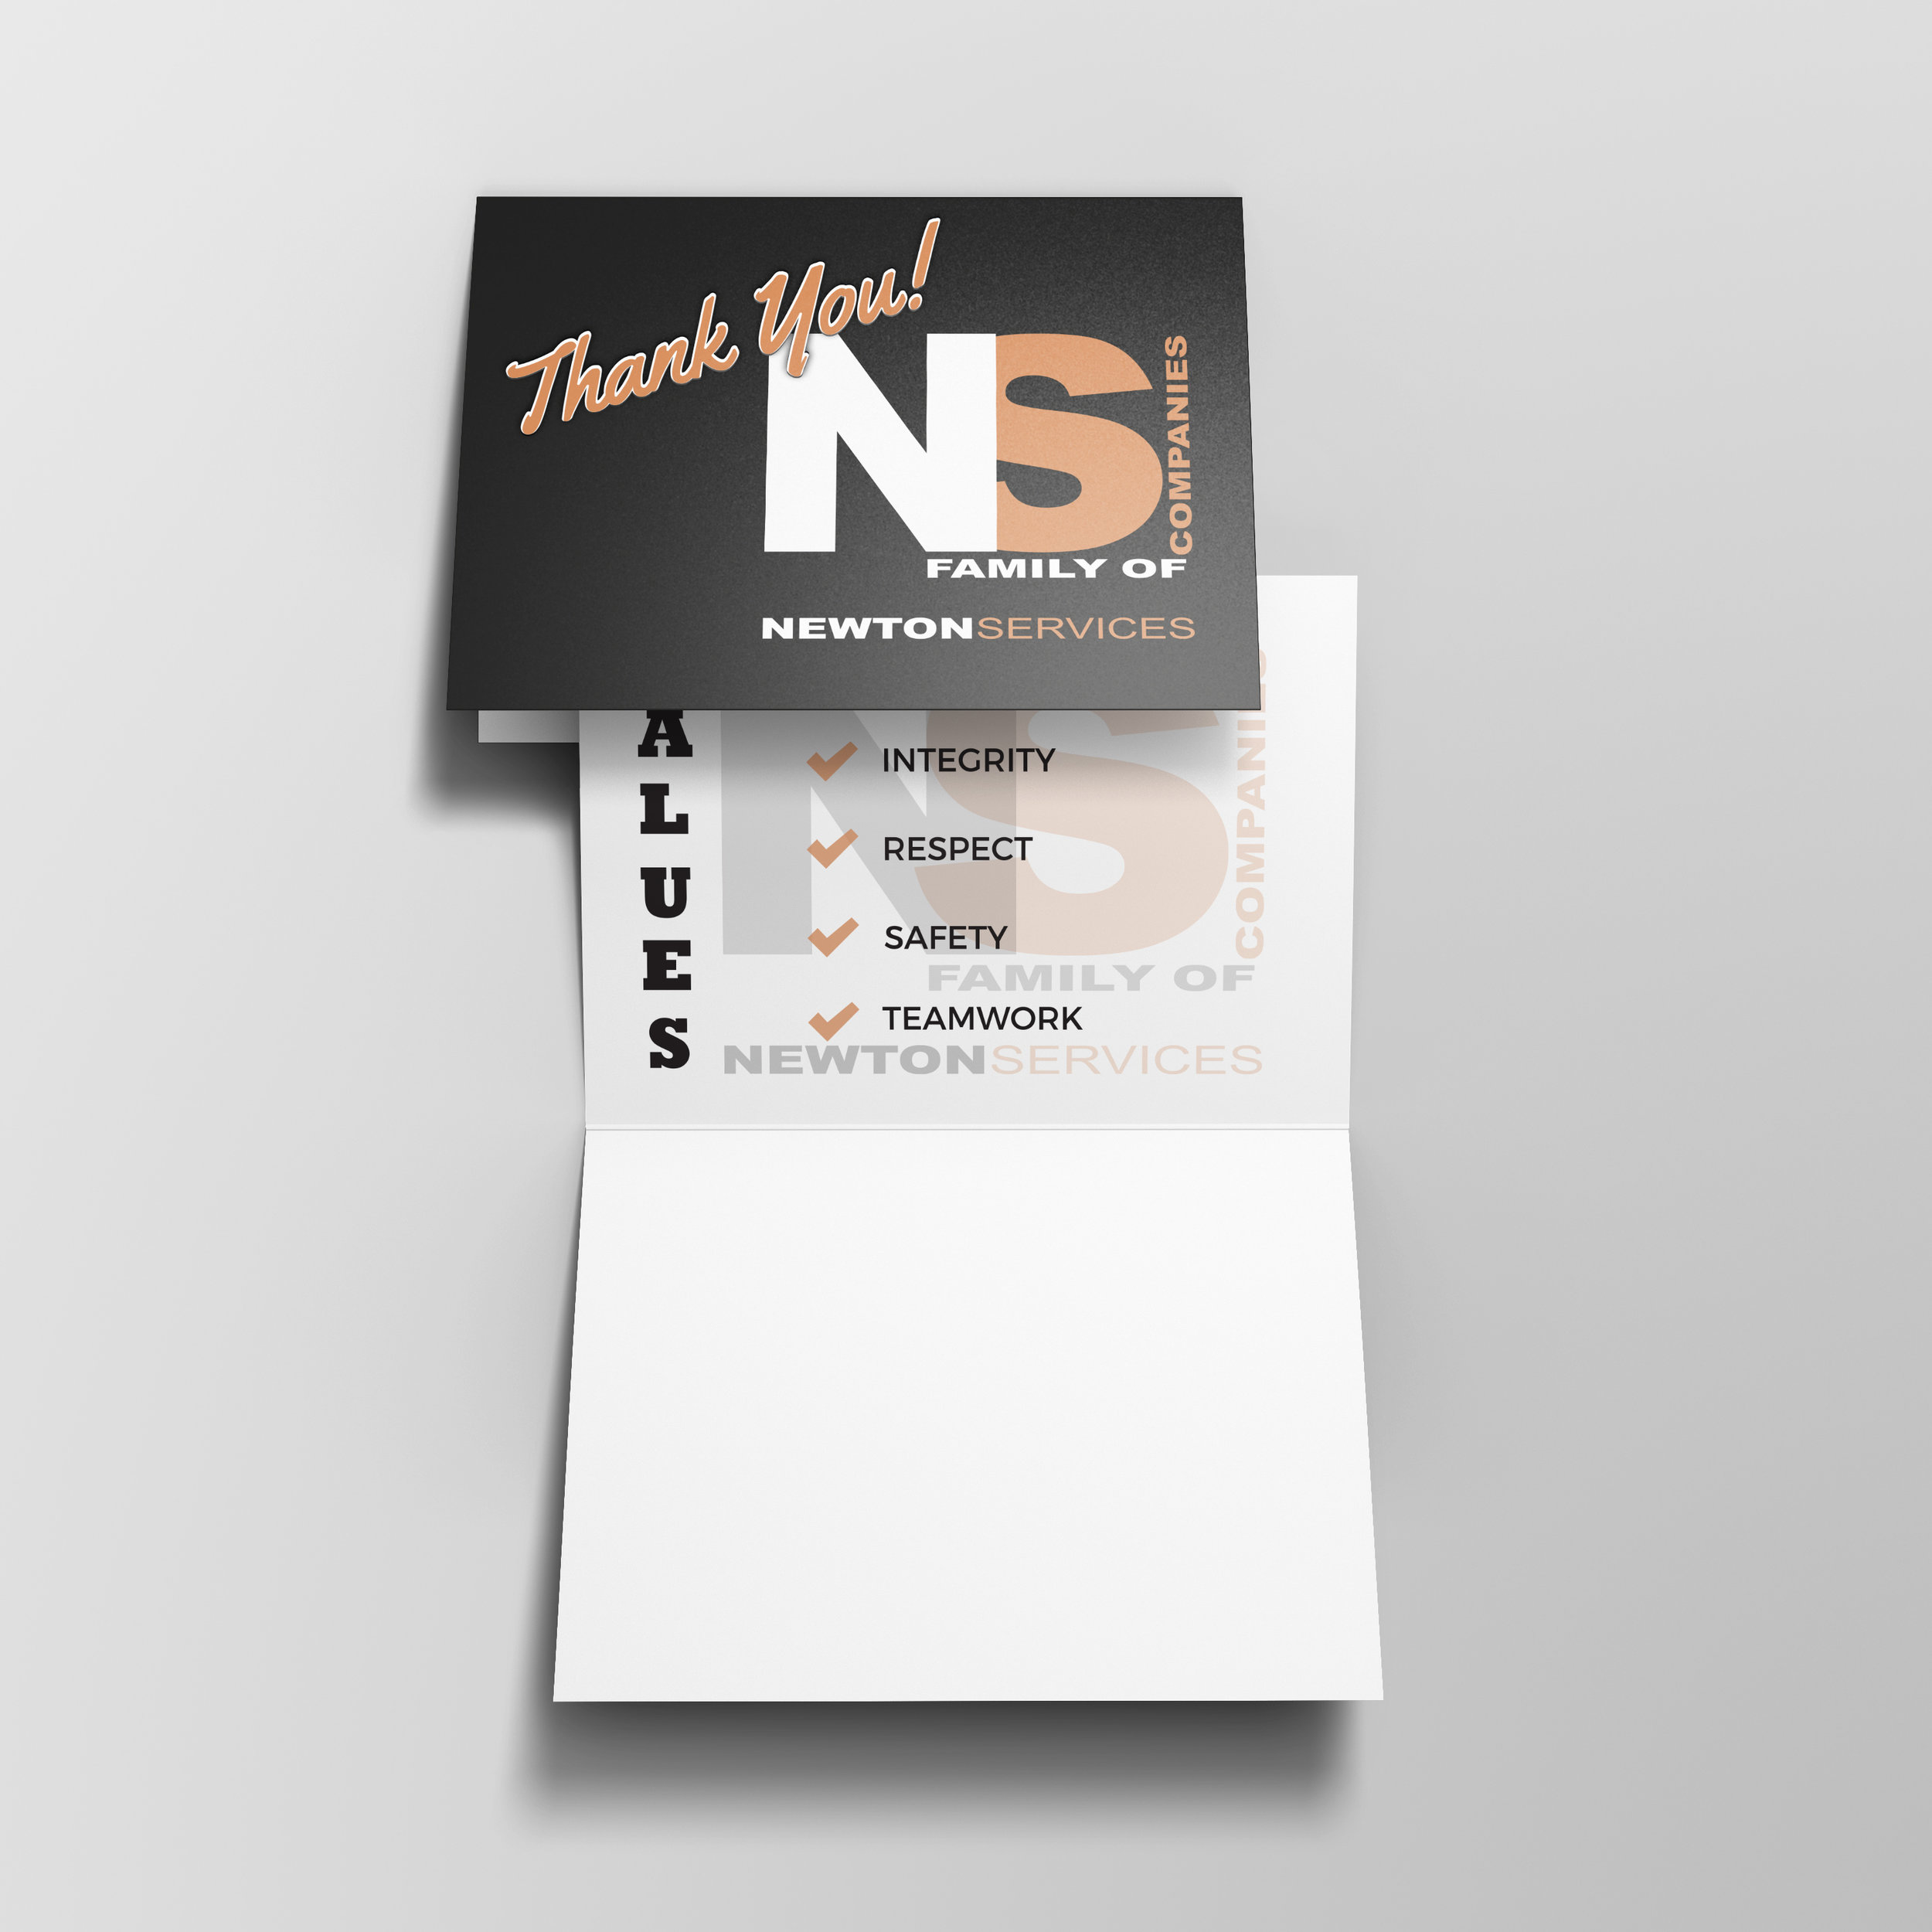 Branded Thank You Cards - Newton Services